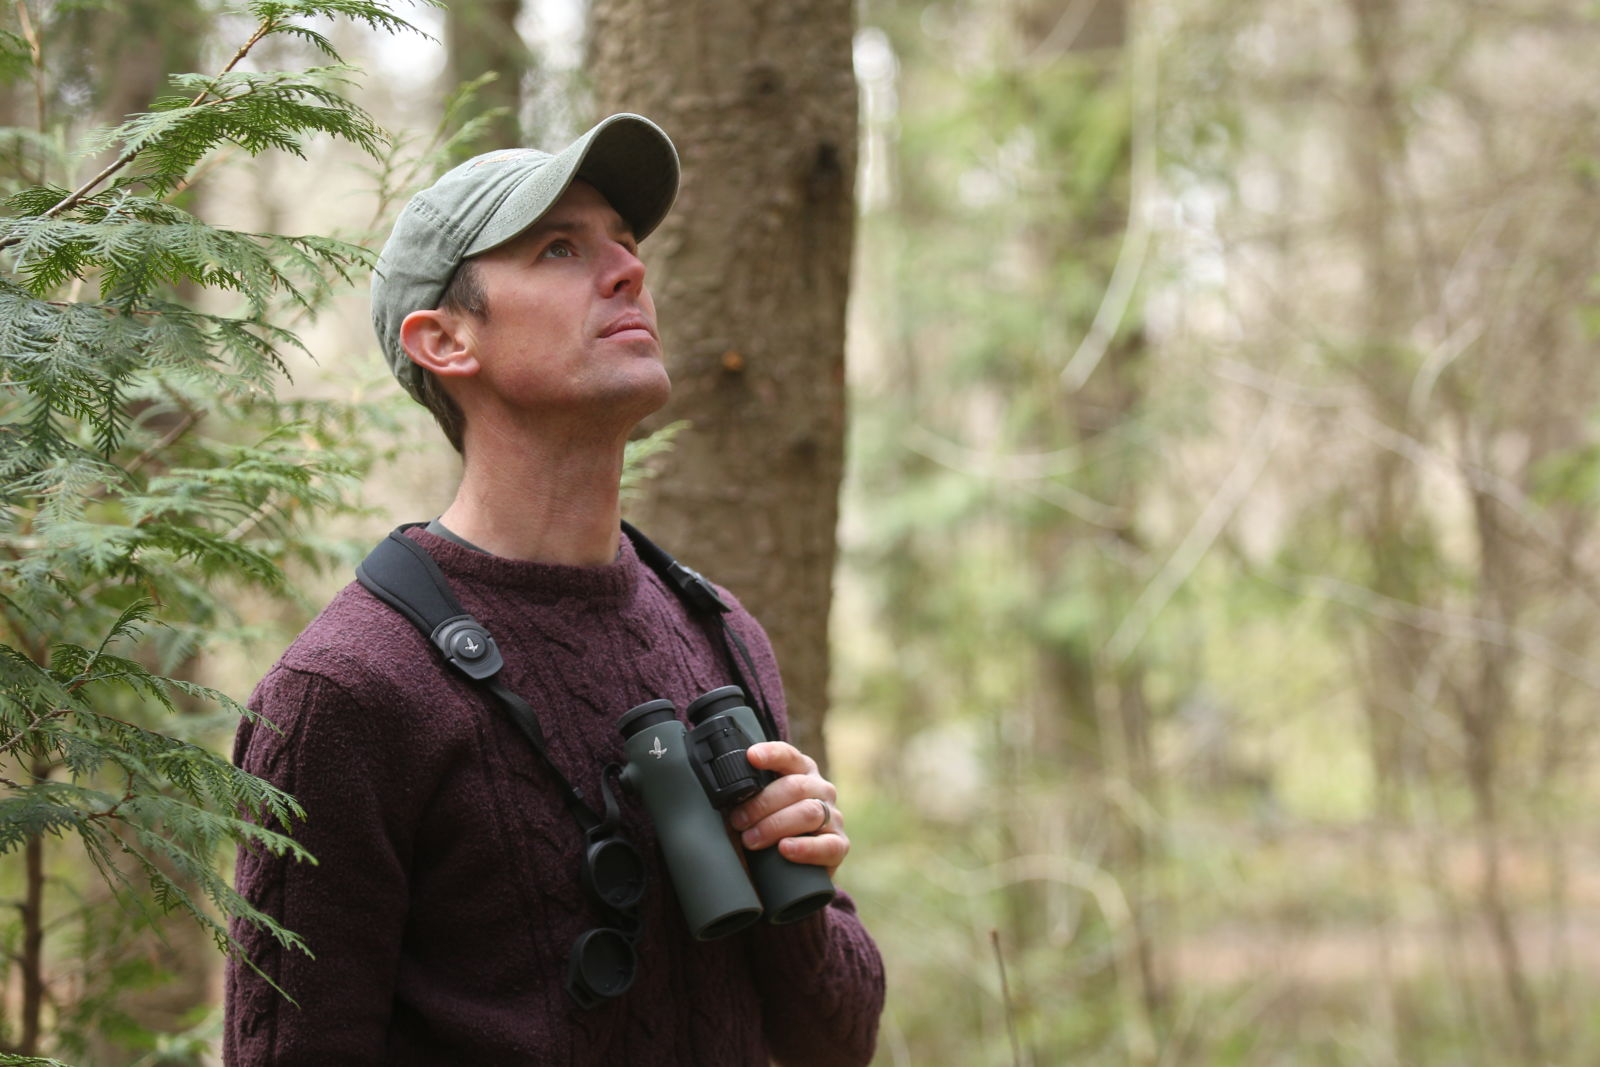 Nature guide and conservation ranger James Lees with the NL Pure 8x42 binoculars.